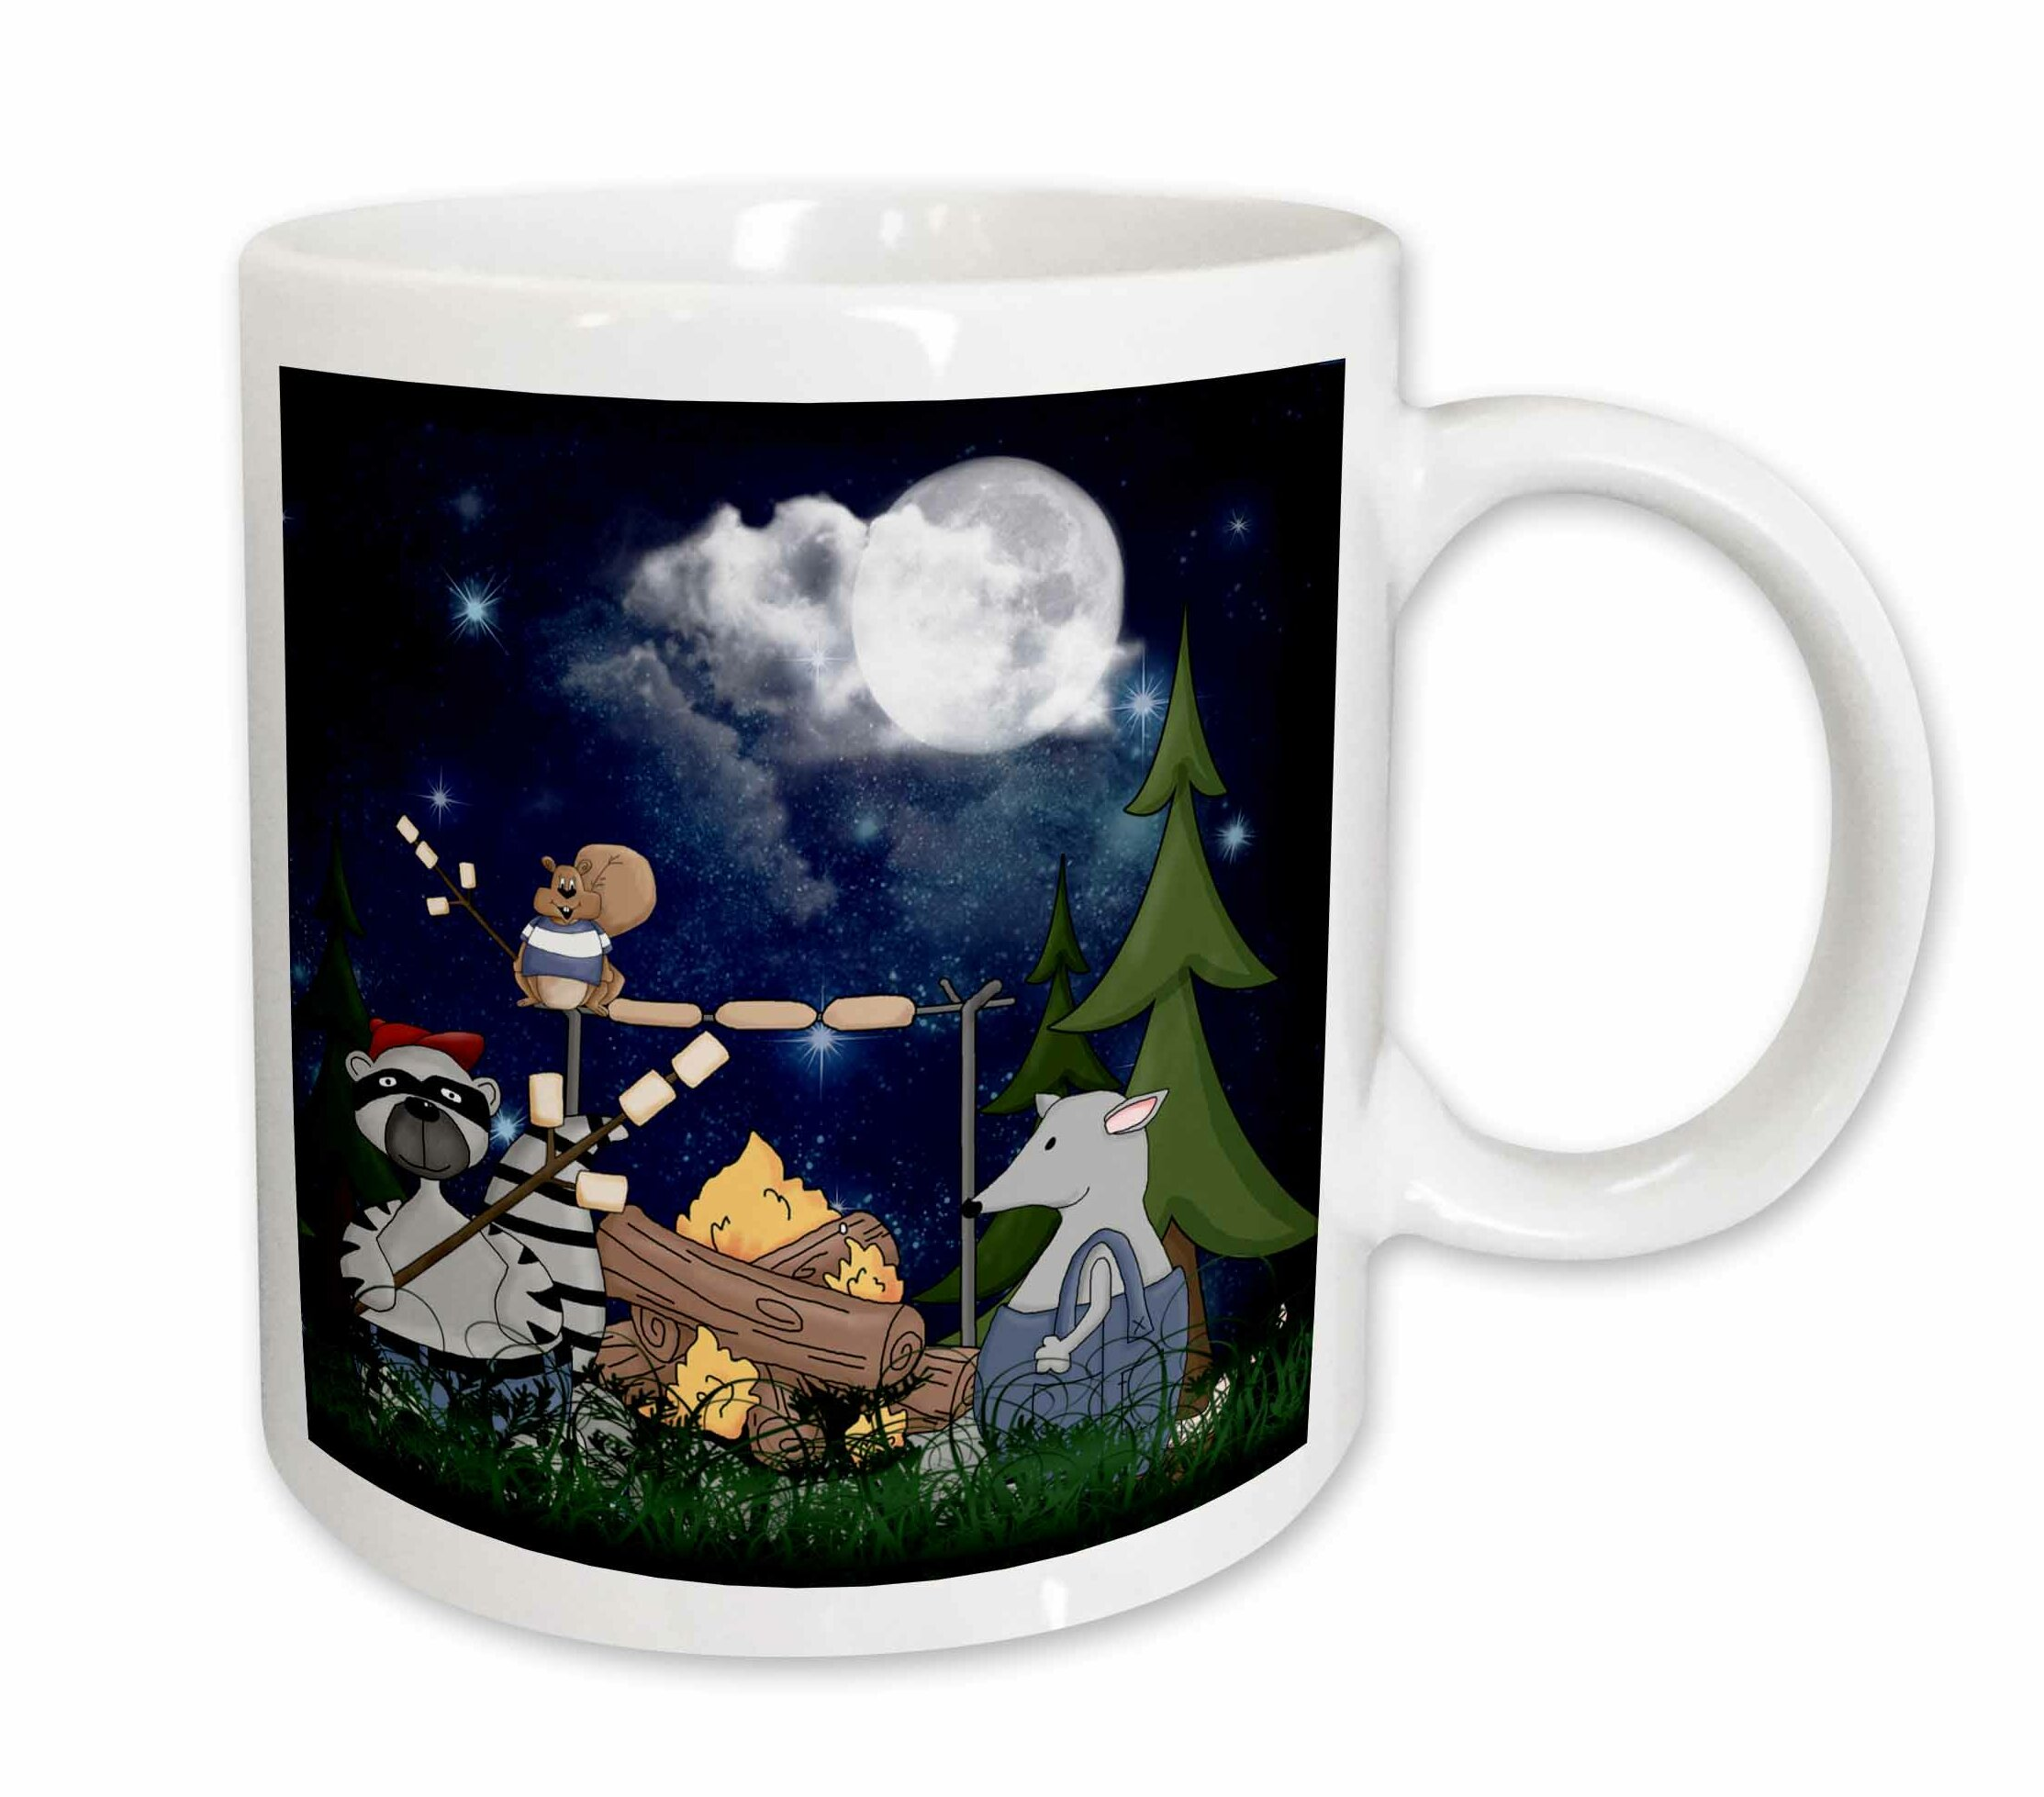 3drose Raccoon Squirrel And Opossum Camping With A Campfire And Marshmallows Coffee Mug Wayfair